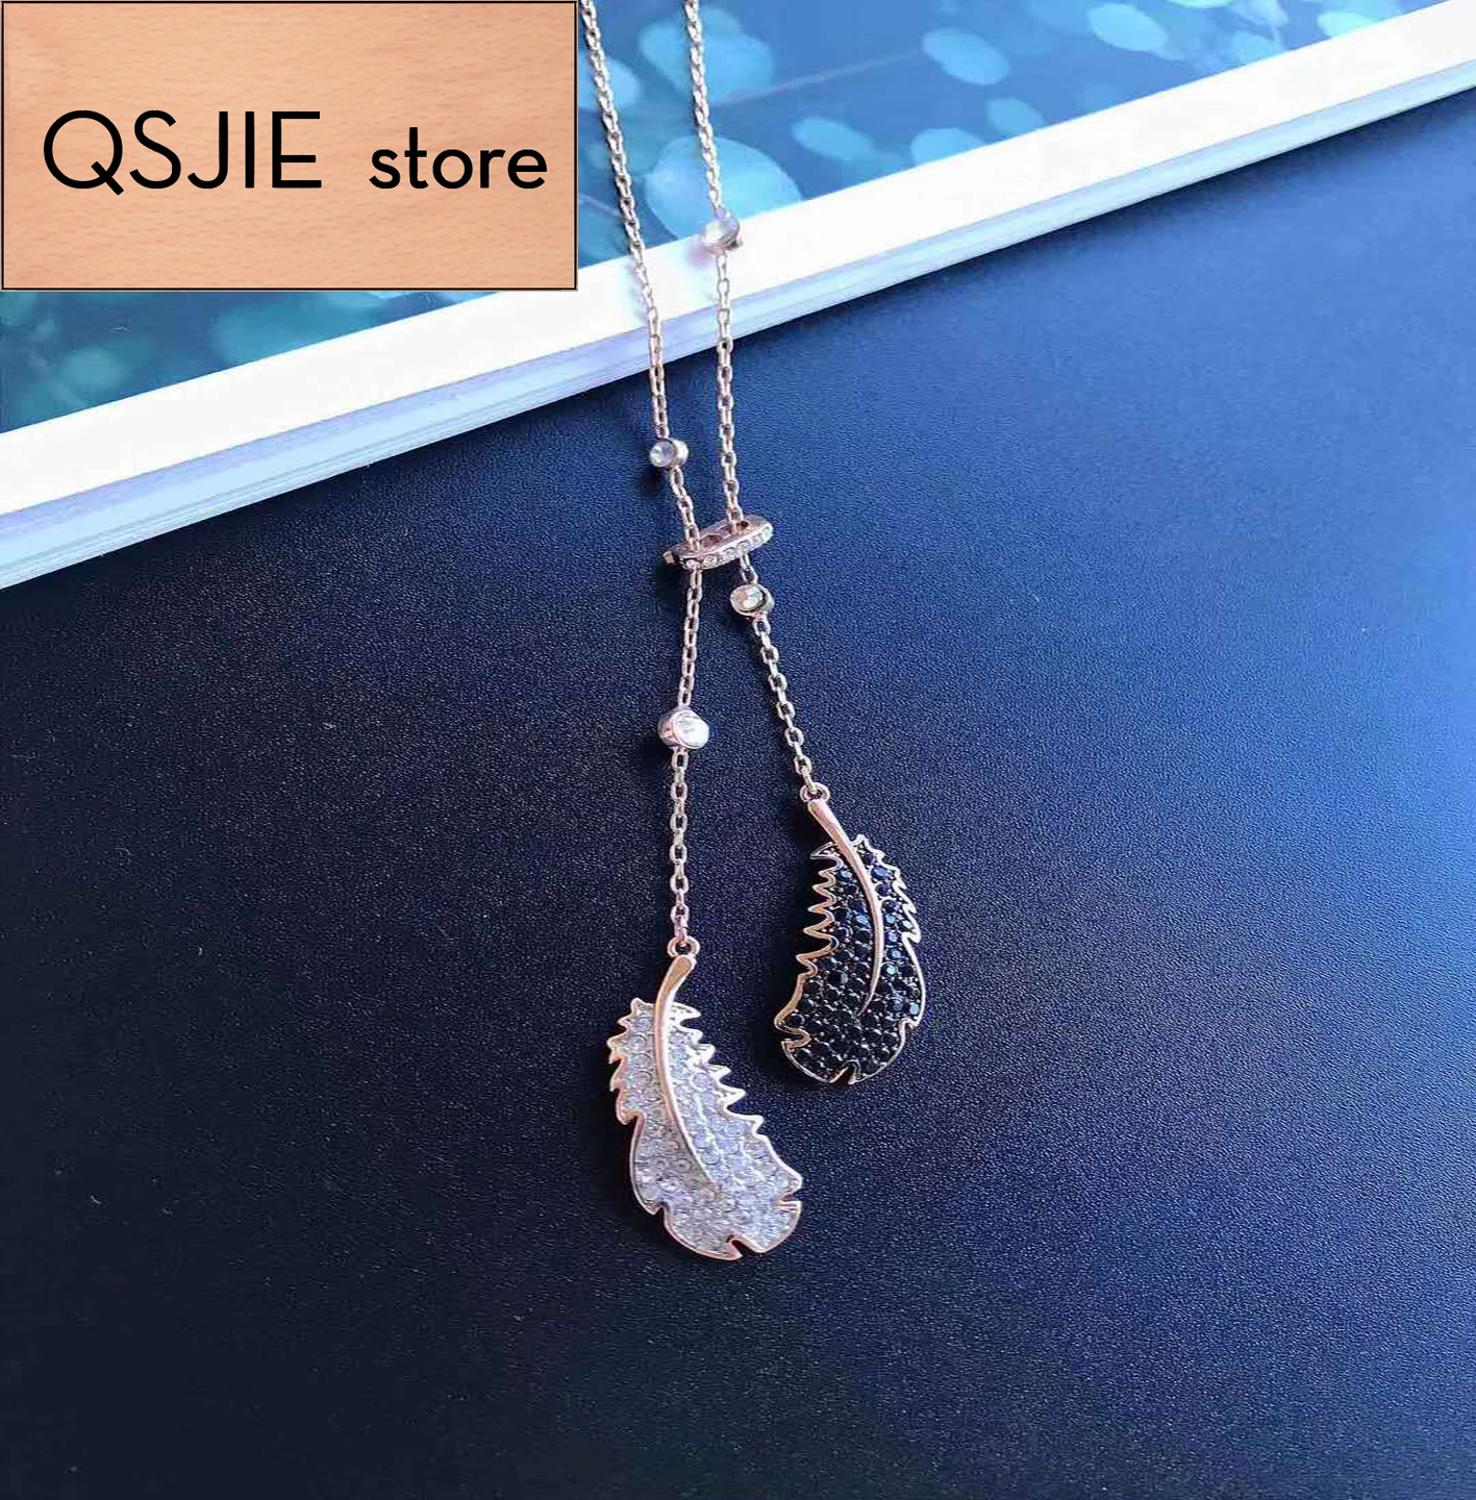 QSJIE High quality SWA black and white feather Long Necklace Glamorous fashion jewelry